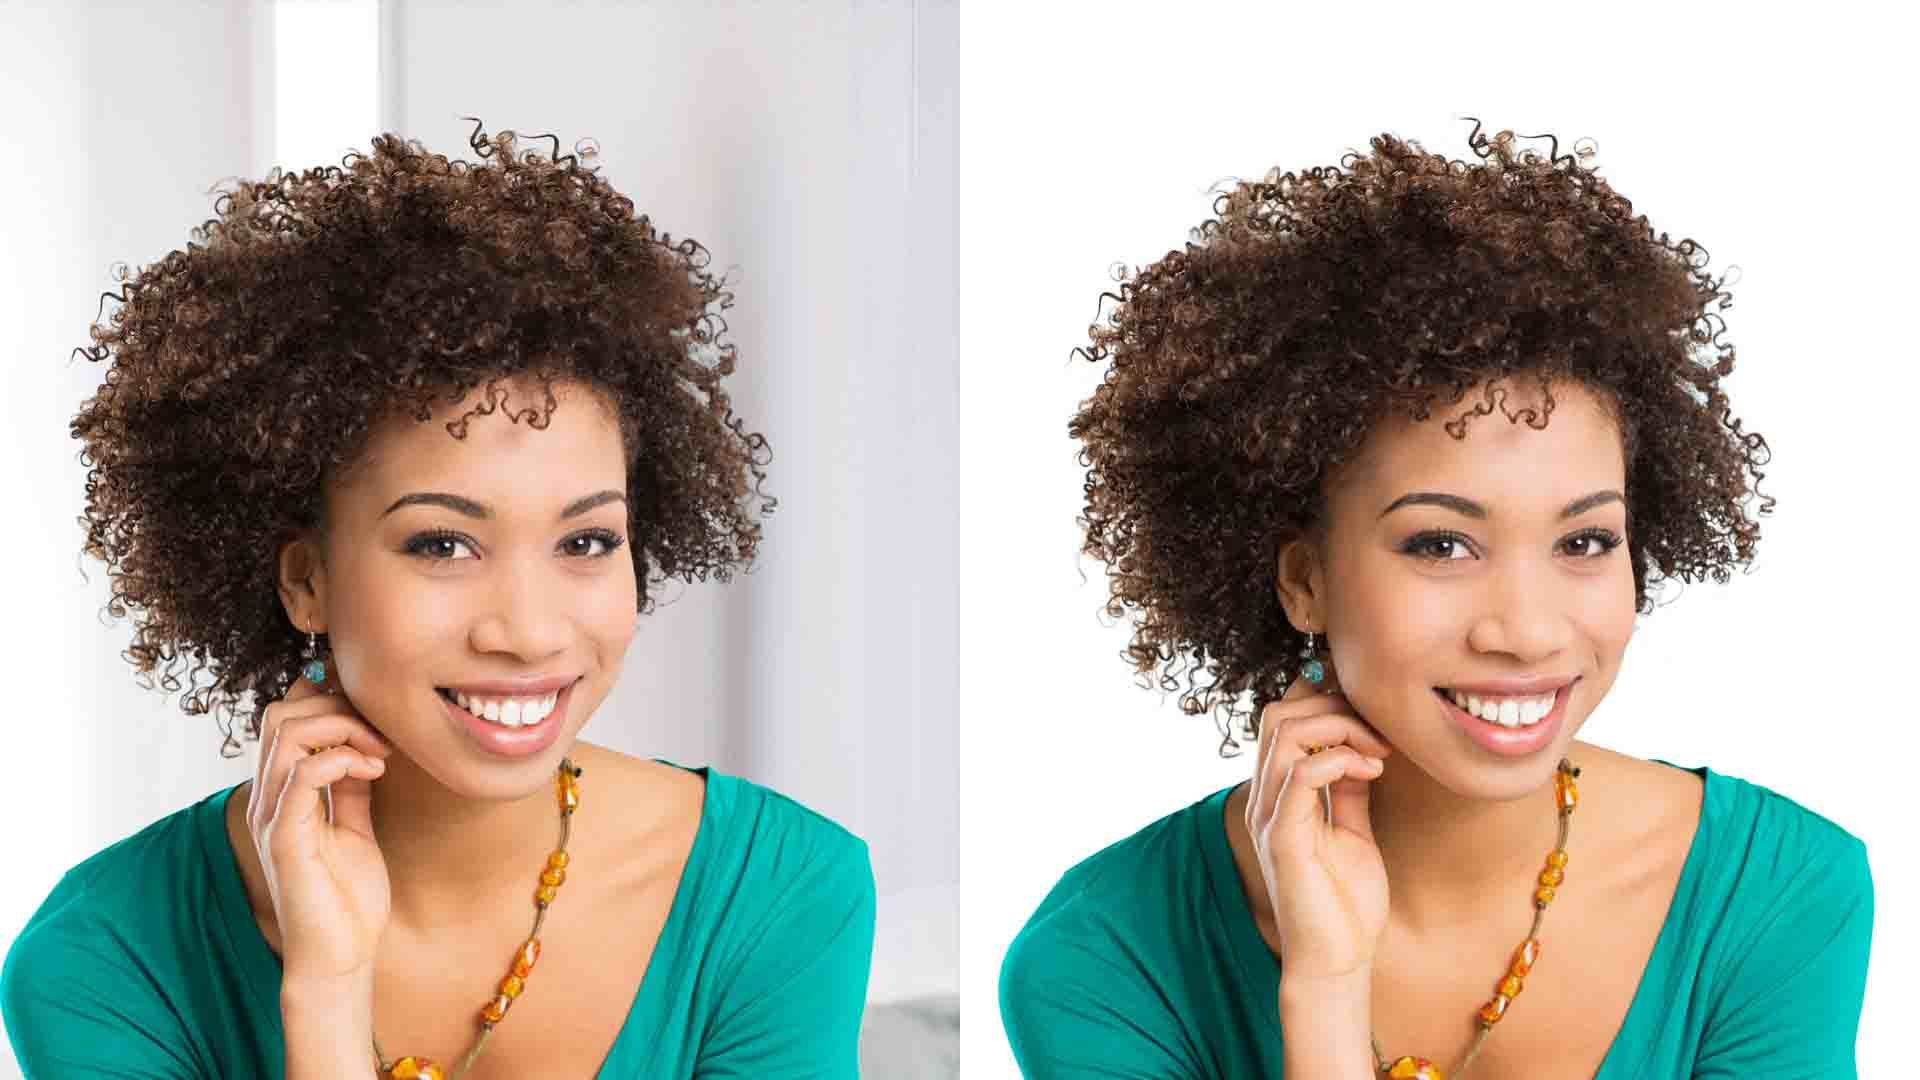 Clipping Path | Background Removal Service | Photo Retouching Services